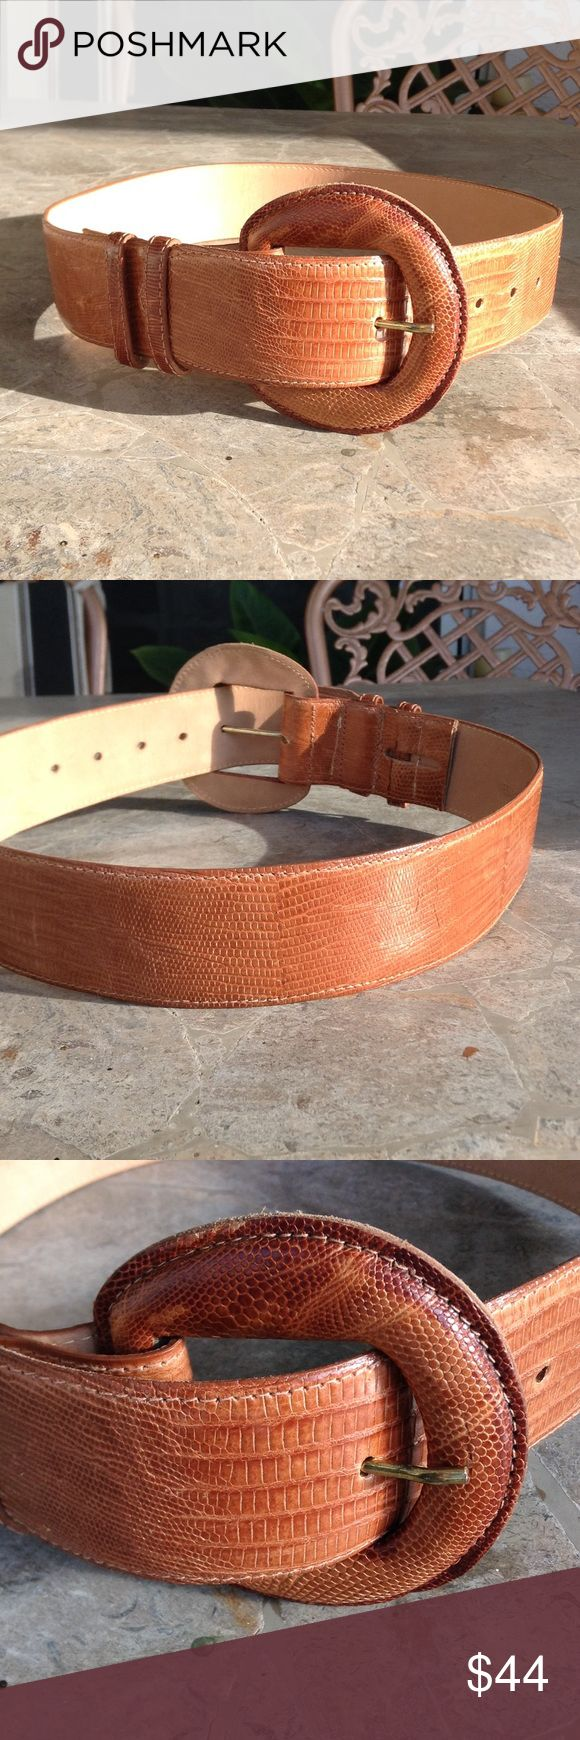 Genuine Lizard Wide Cipriani Belt Absolutely beautiful genuine lizard brown belt by Cipriani, has large lizard buckle, belt is a little over 2 inches wide, and will fit a 25 to 29 inch waist, worn once, pristine condition. Cipriani Accessories Belts